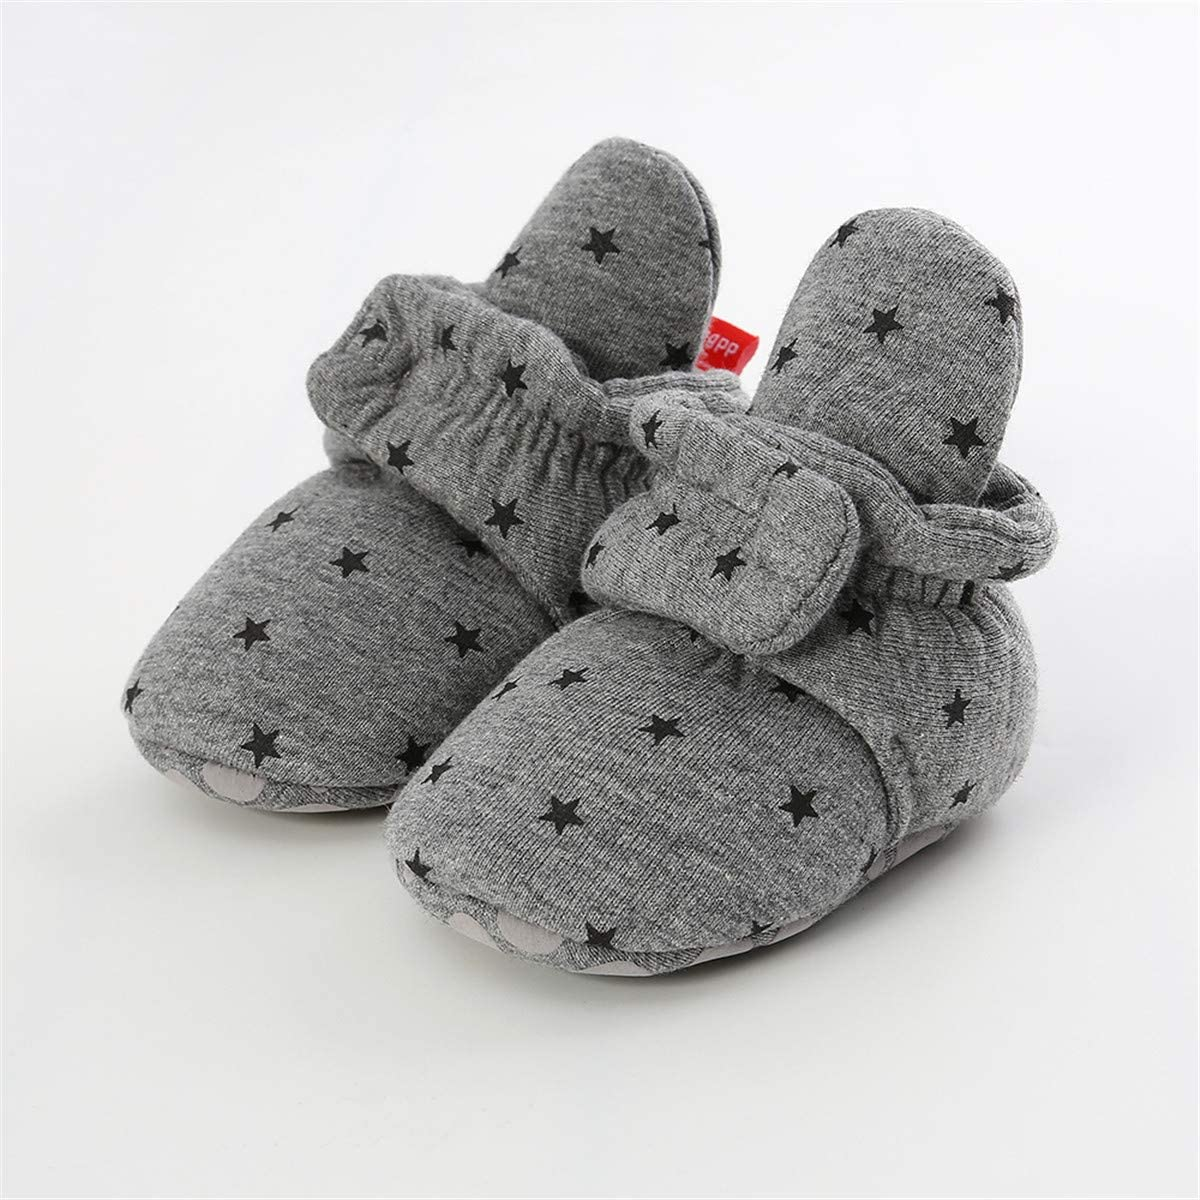 ENERCAKE Newborn Baby Boys Girls Cozy Fleece Booties with Grippers Stay On Slipper Socks Crib Infant Winter Shoes